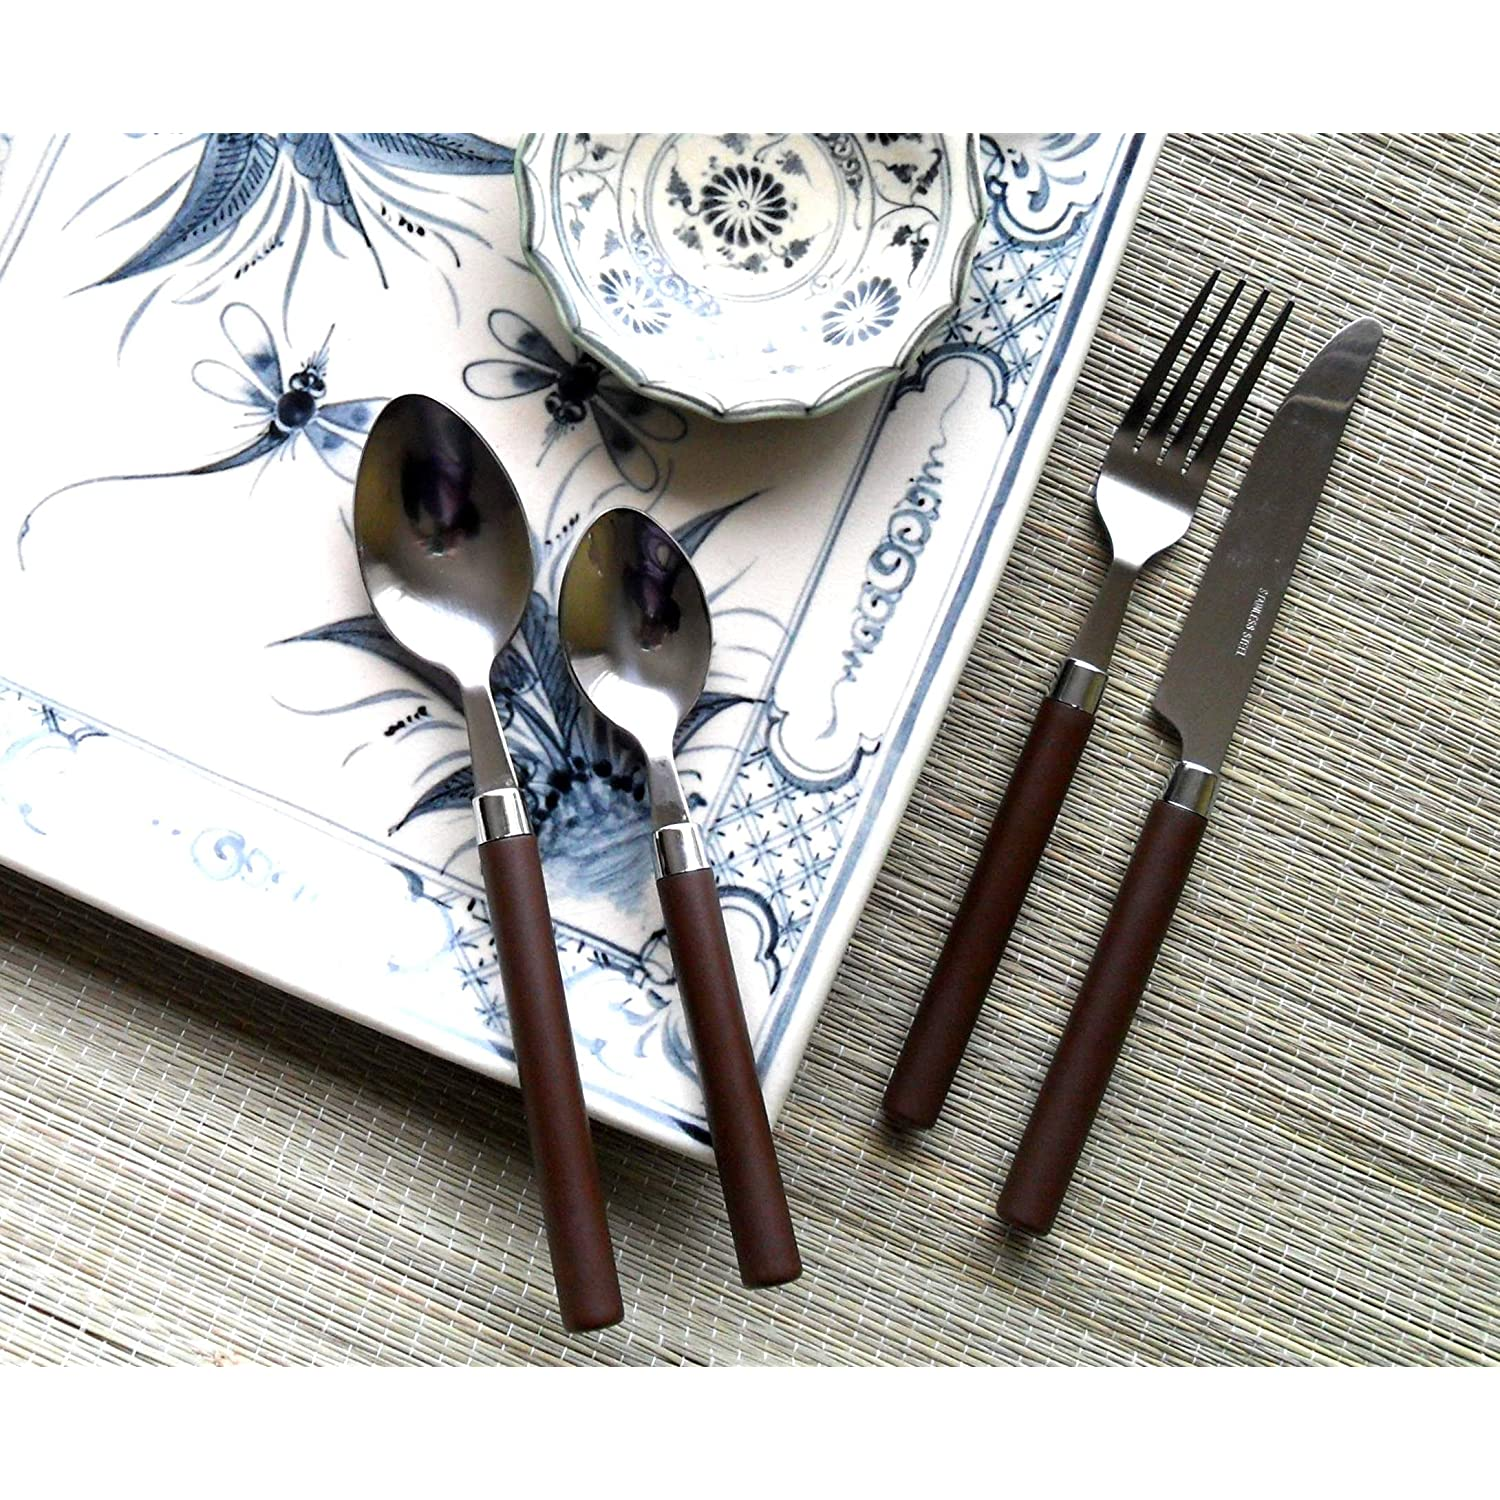 Flatware Service for 4 Stainless Steel with Trendy Coffee Colored Handles for Spring